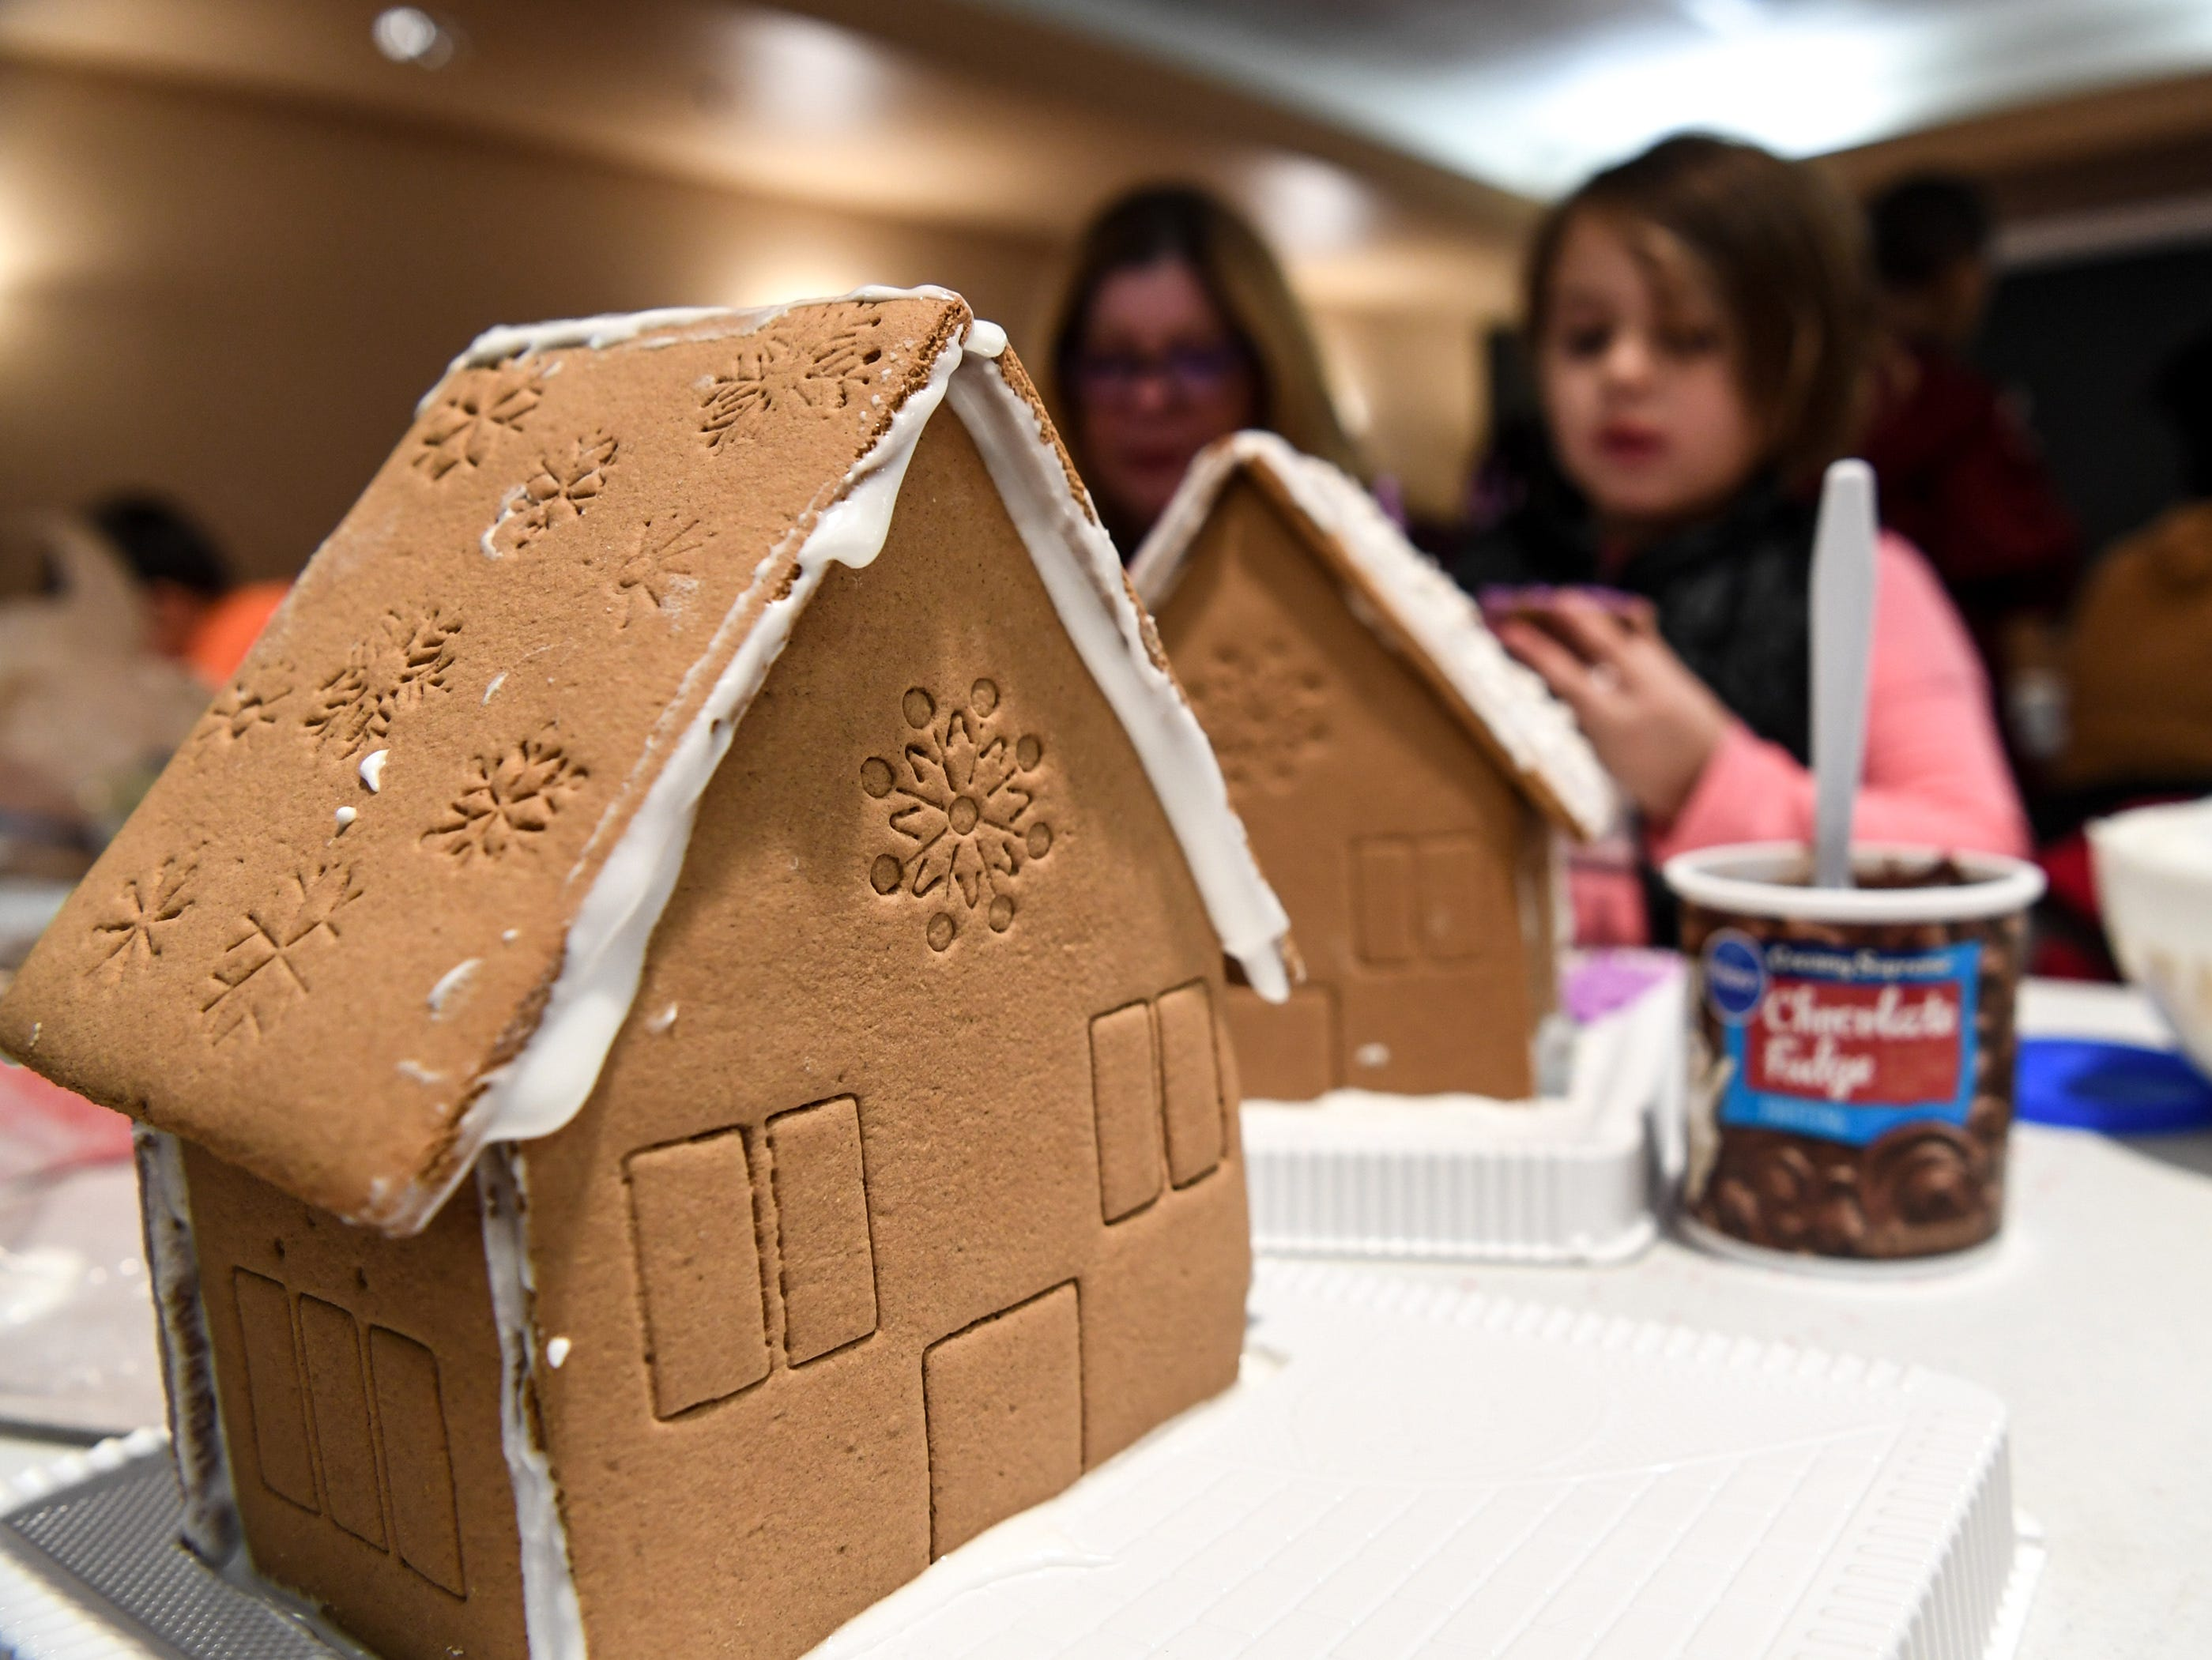 Annabeth Kolb works on a train shaped gingerbread creation during the Big Brothers Big Sisters of the Upstate gingerbread house decorating party at the Anderson County Museum in Anderson on Tuesday. Older mentors spend six hours or more a month with their little brother or sister, including the group activity with materials donated by local businesses. The group matches up mentors in Anderson, Oconee, and Pickens Counties.